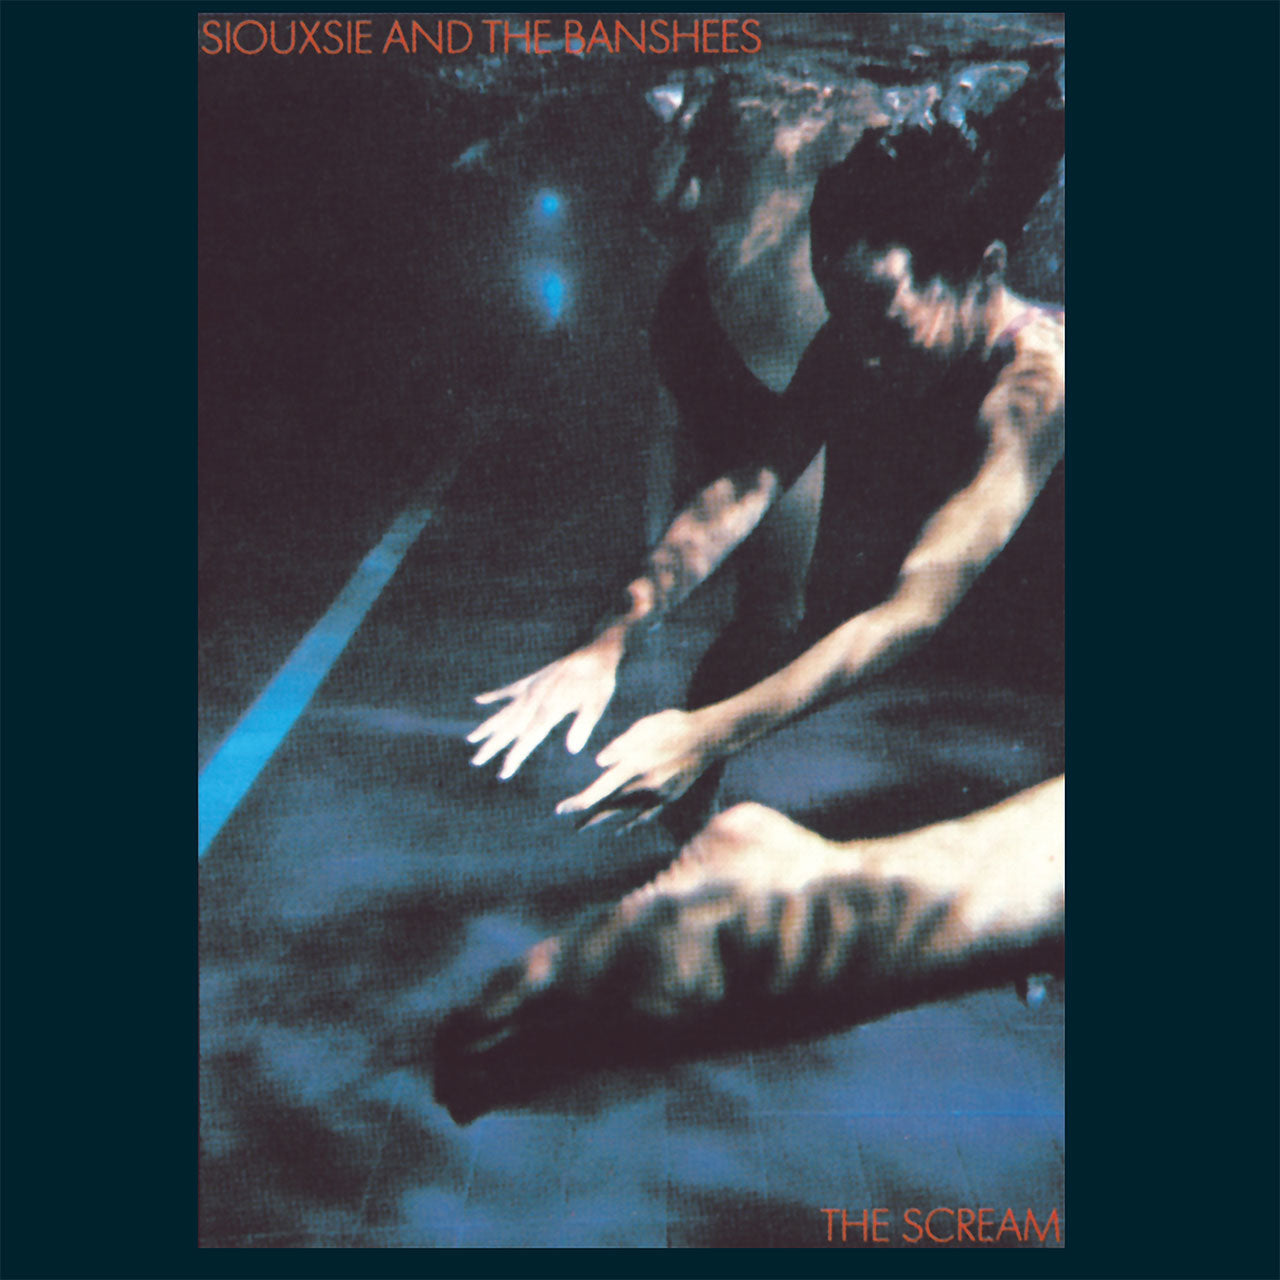 Siouxsie and the Banshees - The Scream (CD)